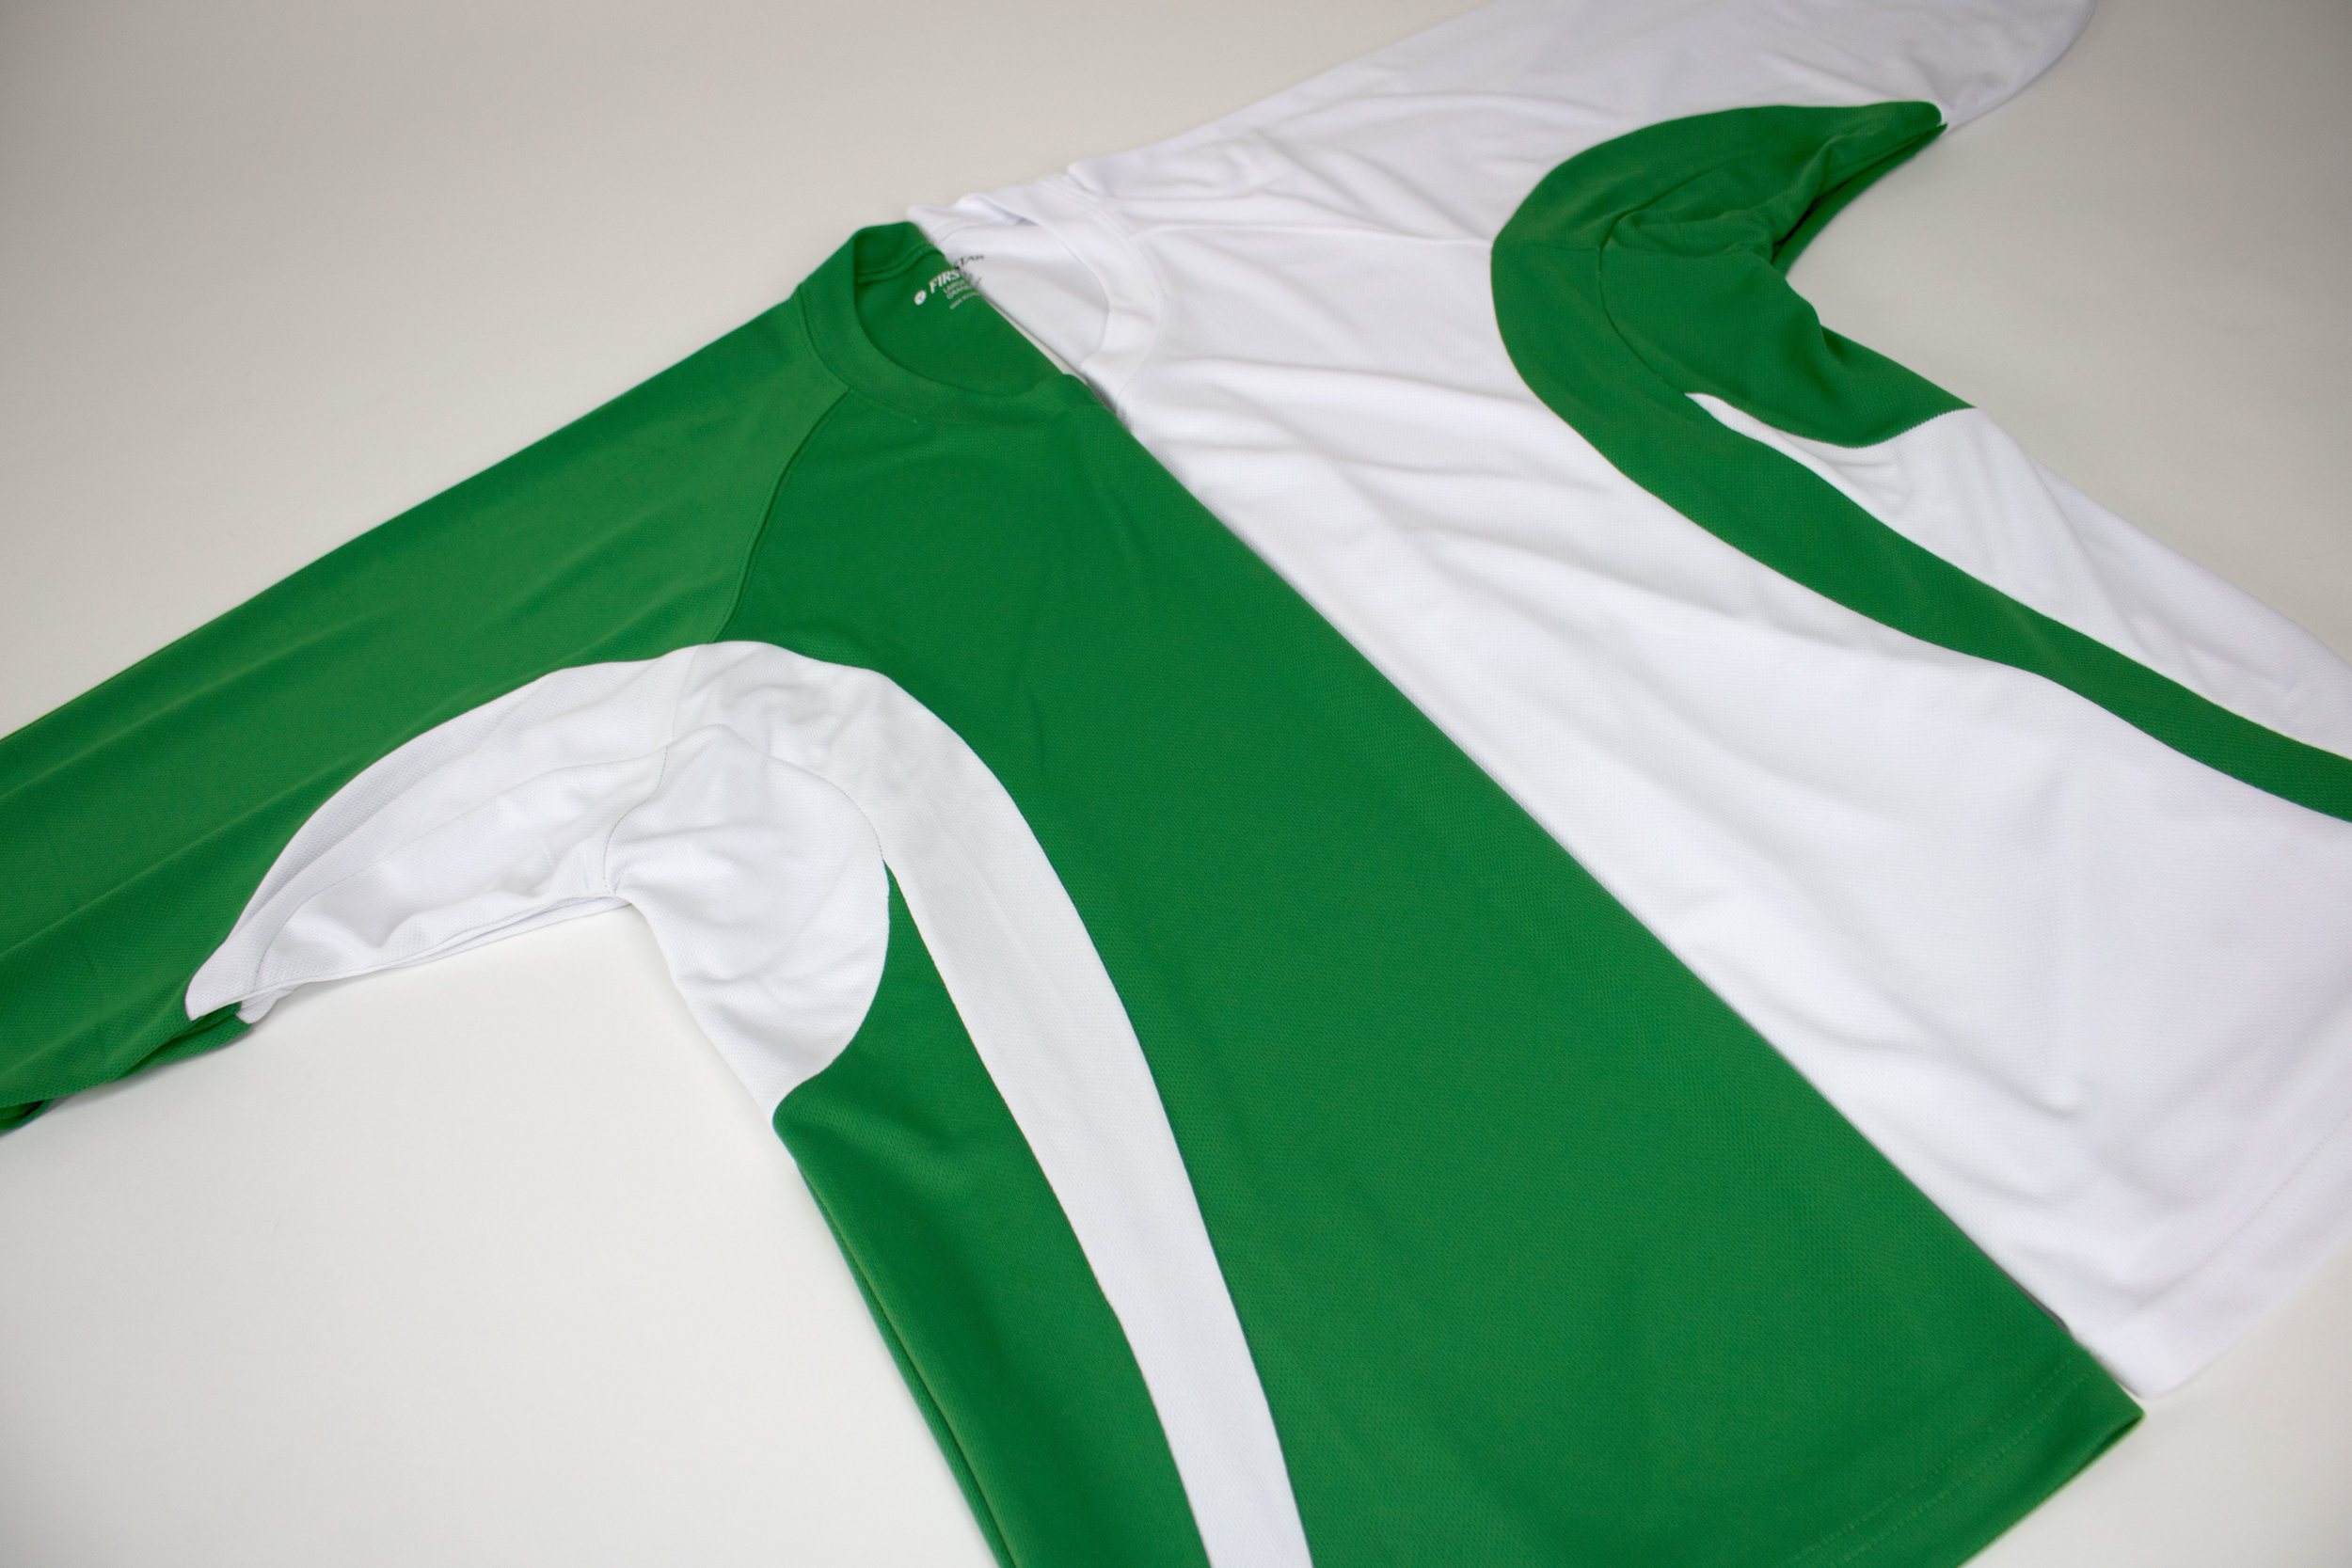 Arena Jerseys - High-Quality, Pro-Weight Jerseys